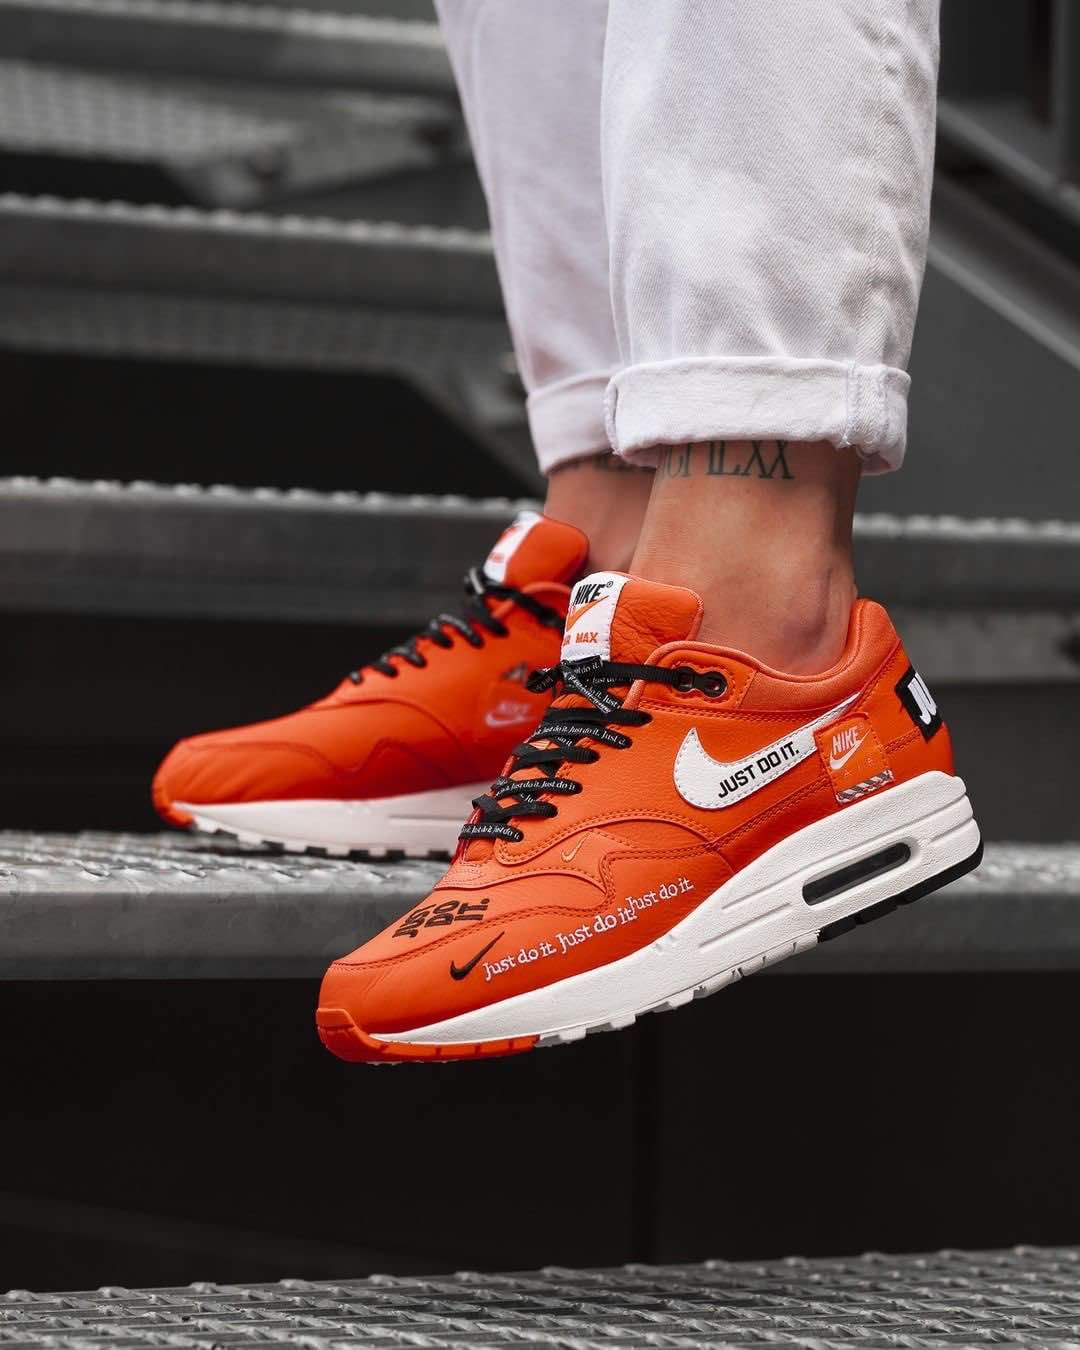 Nike Air Max 1 Lux « Just Do It » Orange Black White